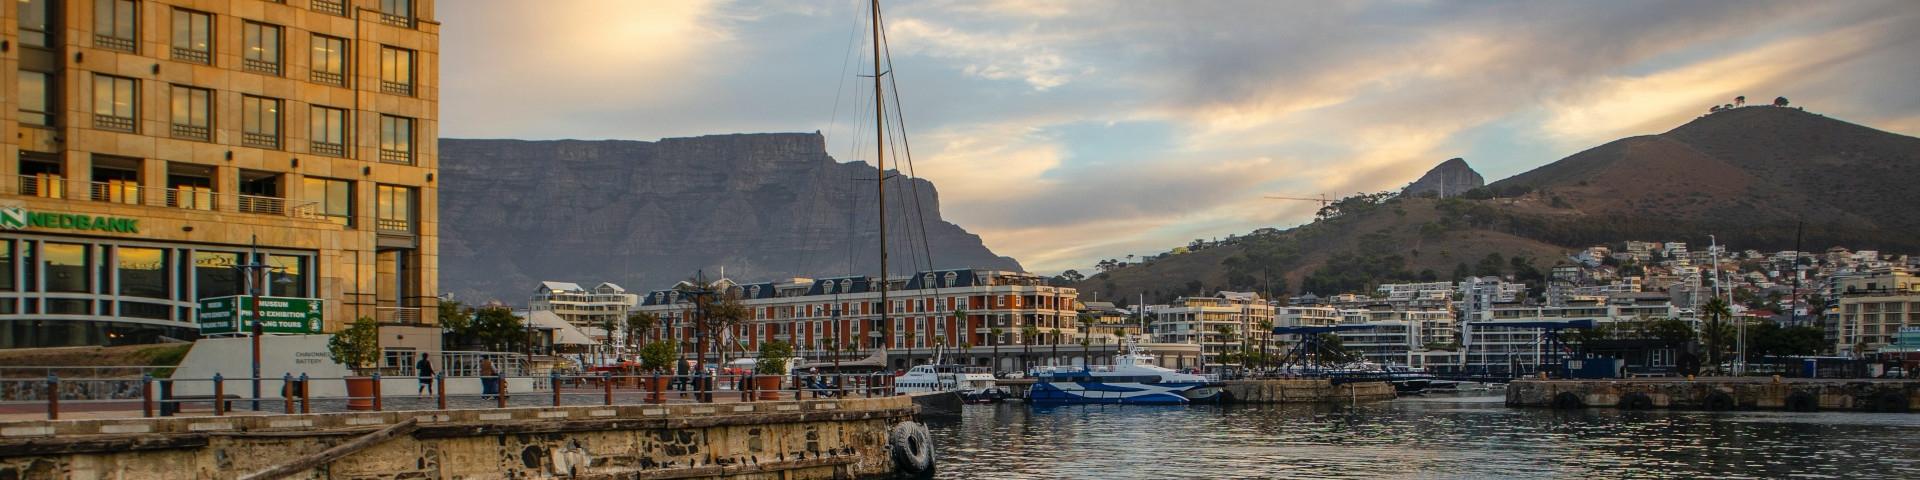 Waterfront - Cape Town - Table Mountain - South Africa